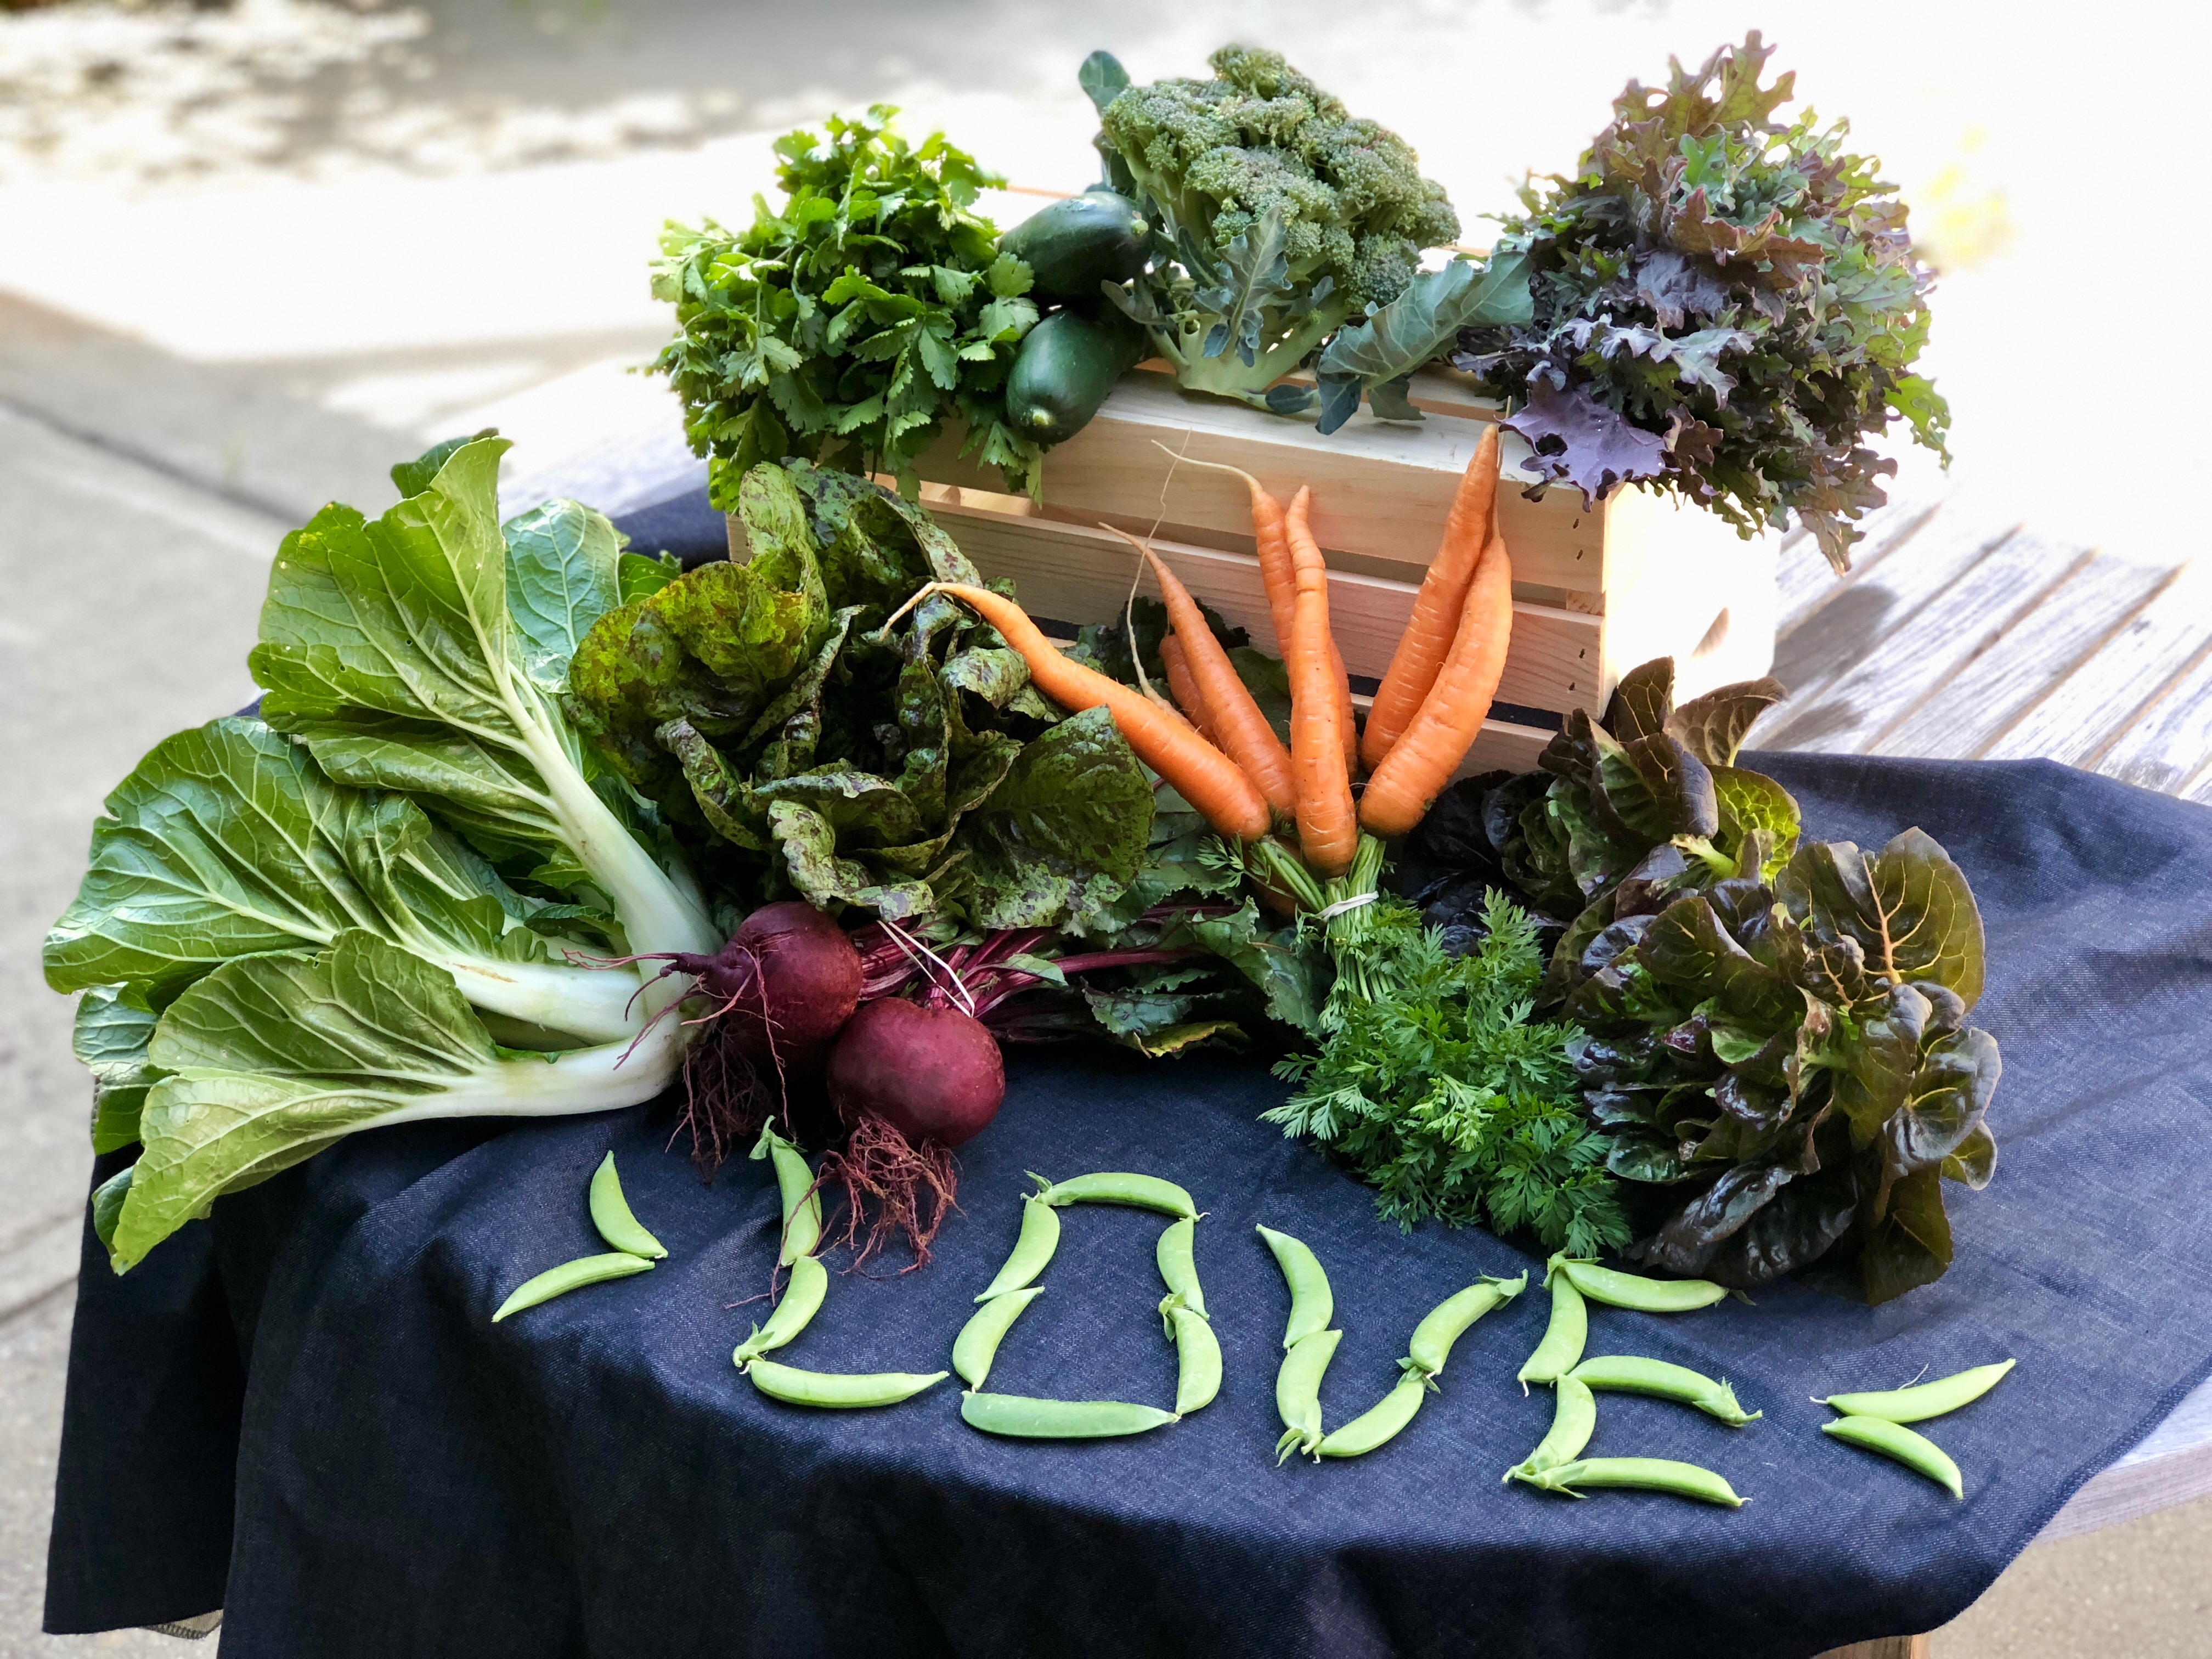 You are the heart of our farm community.